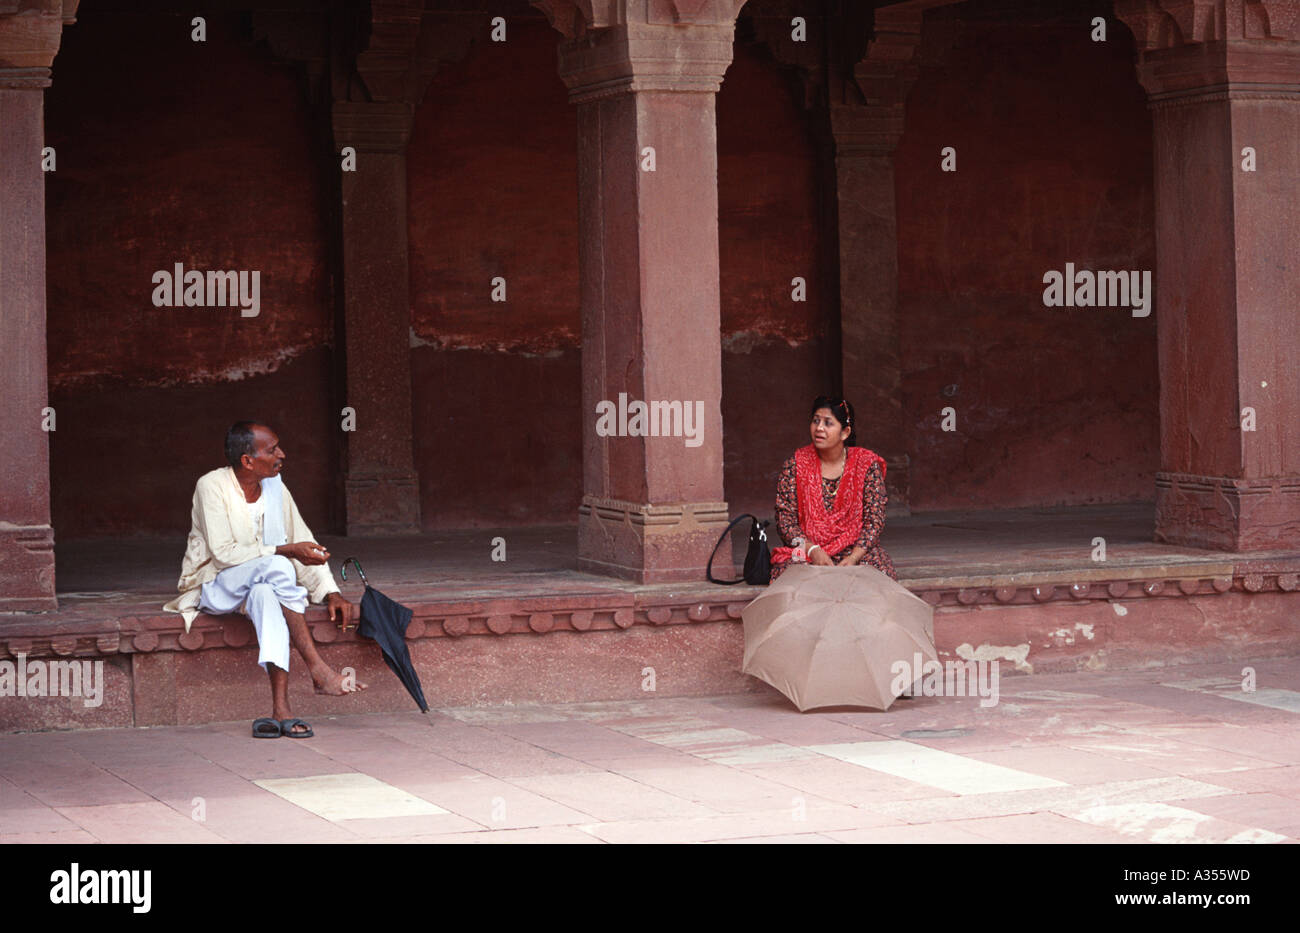 An Indian man and woman sitting chatting at Fatephur Sikri India - Stock Image